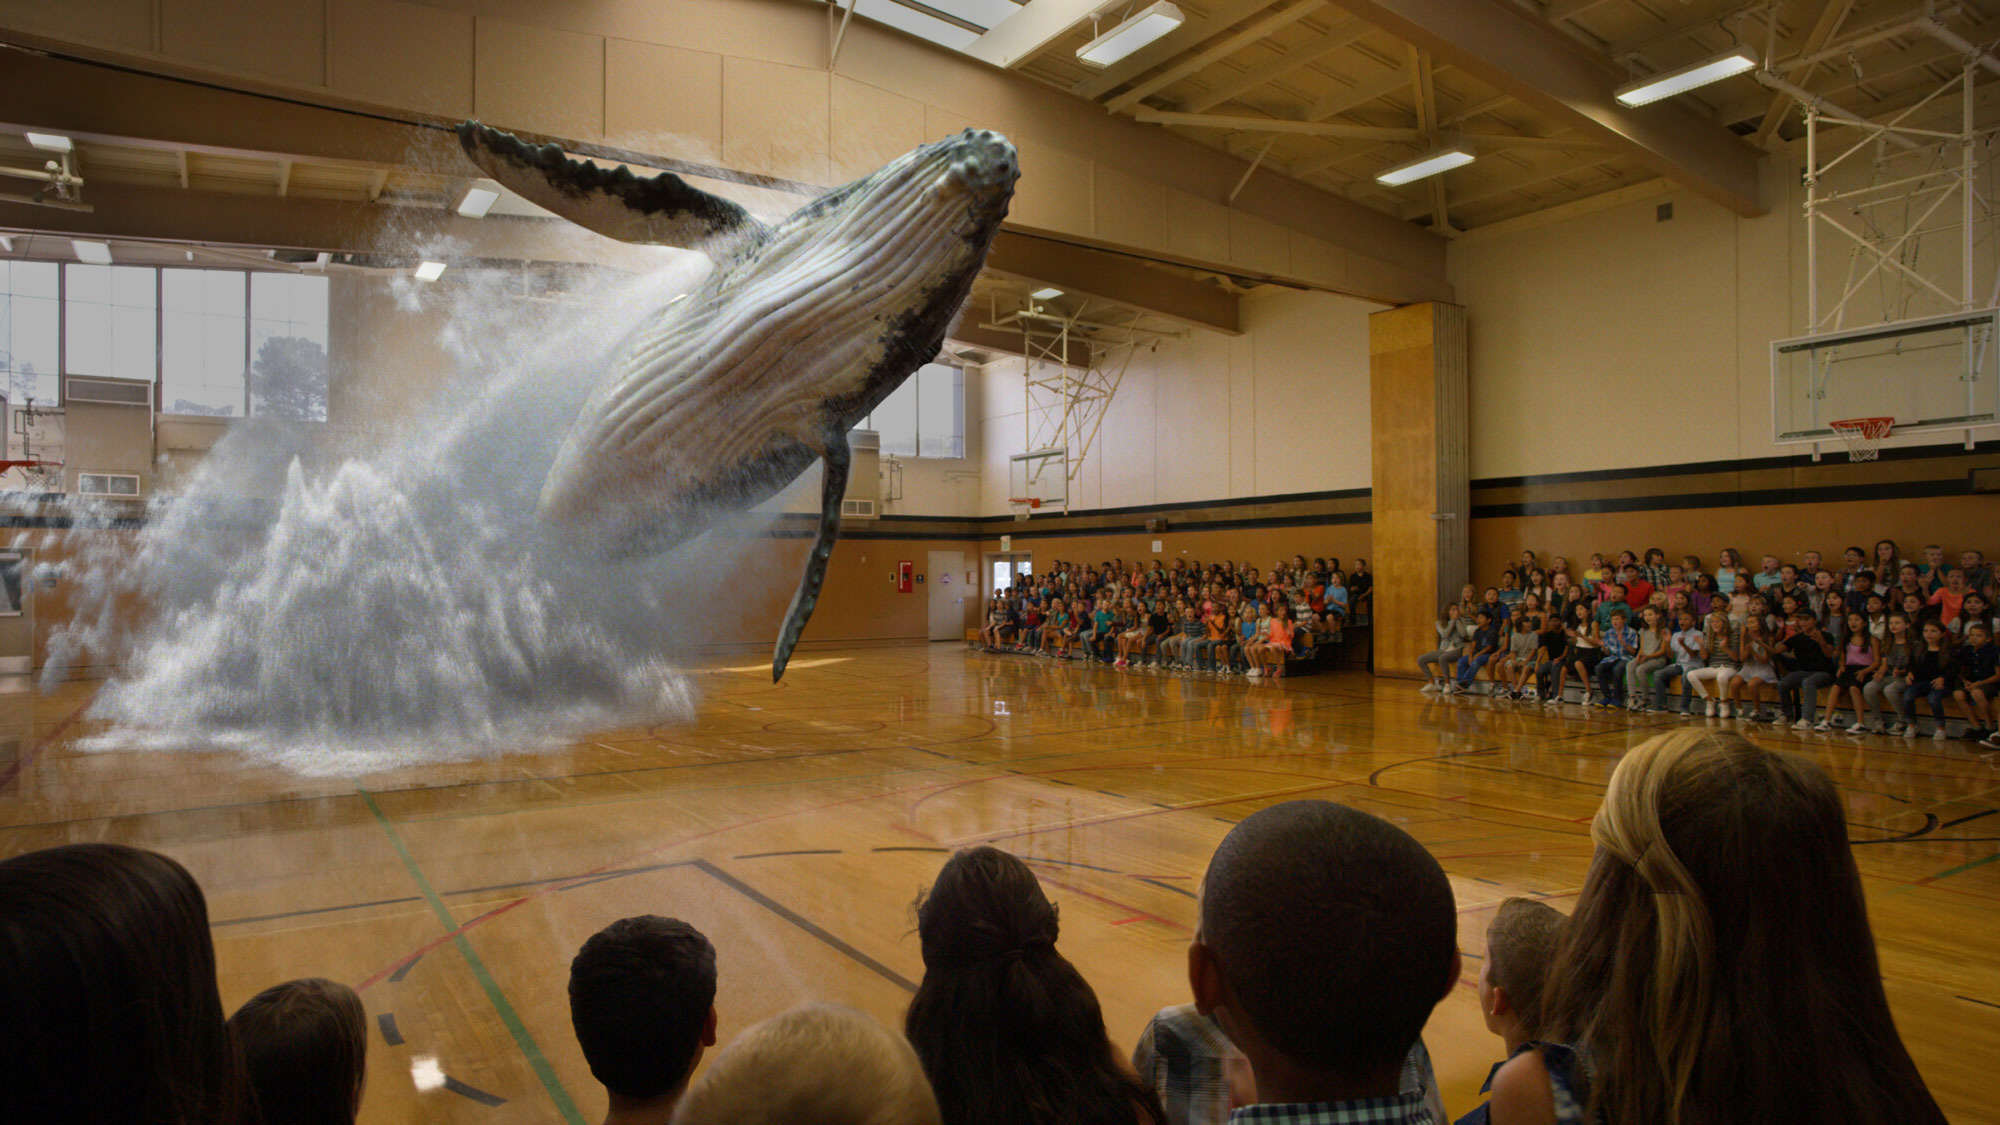 VR Company Magic Leap Raise Over £547 Million For Mysterious New Product magic leap